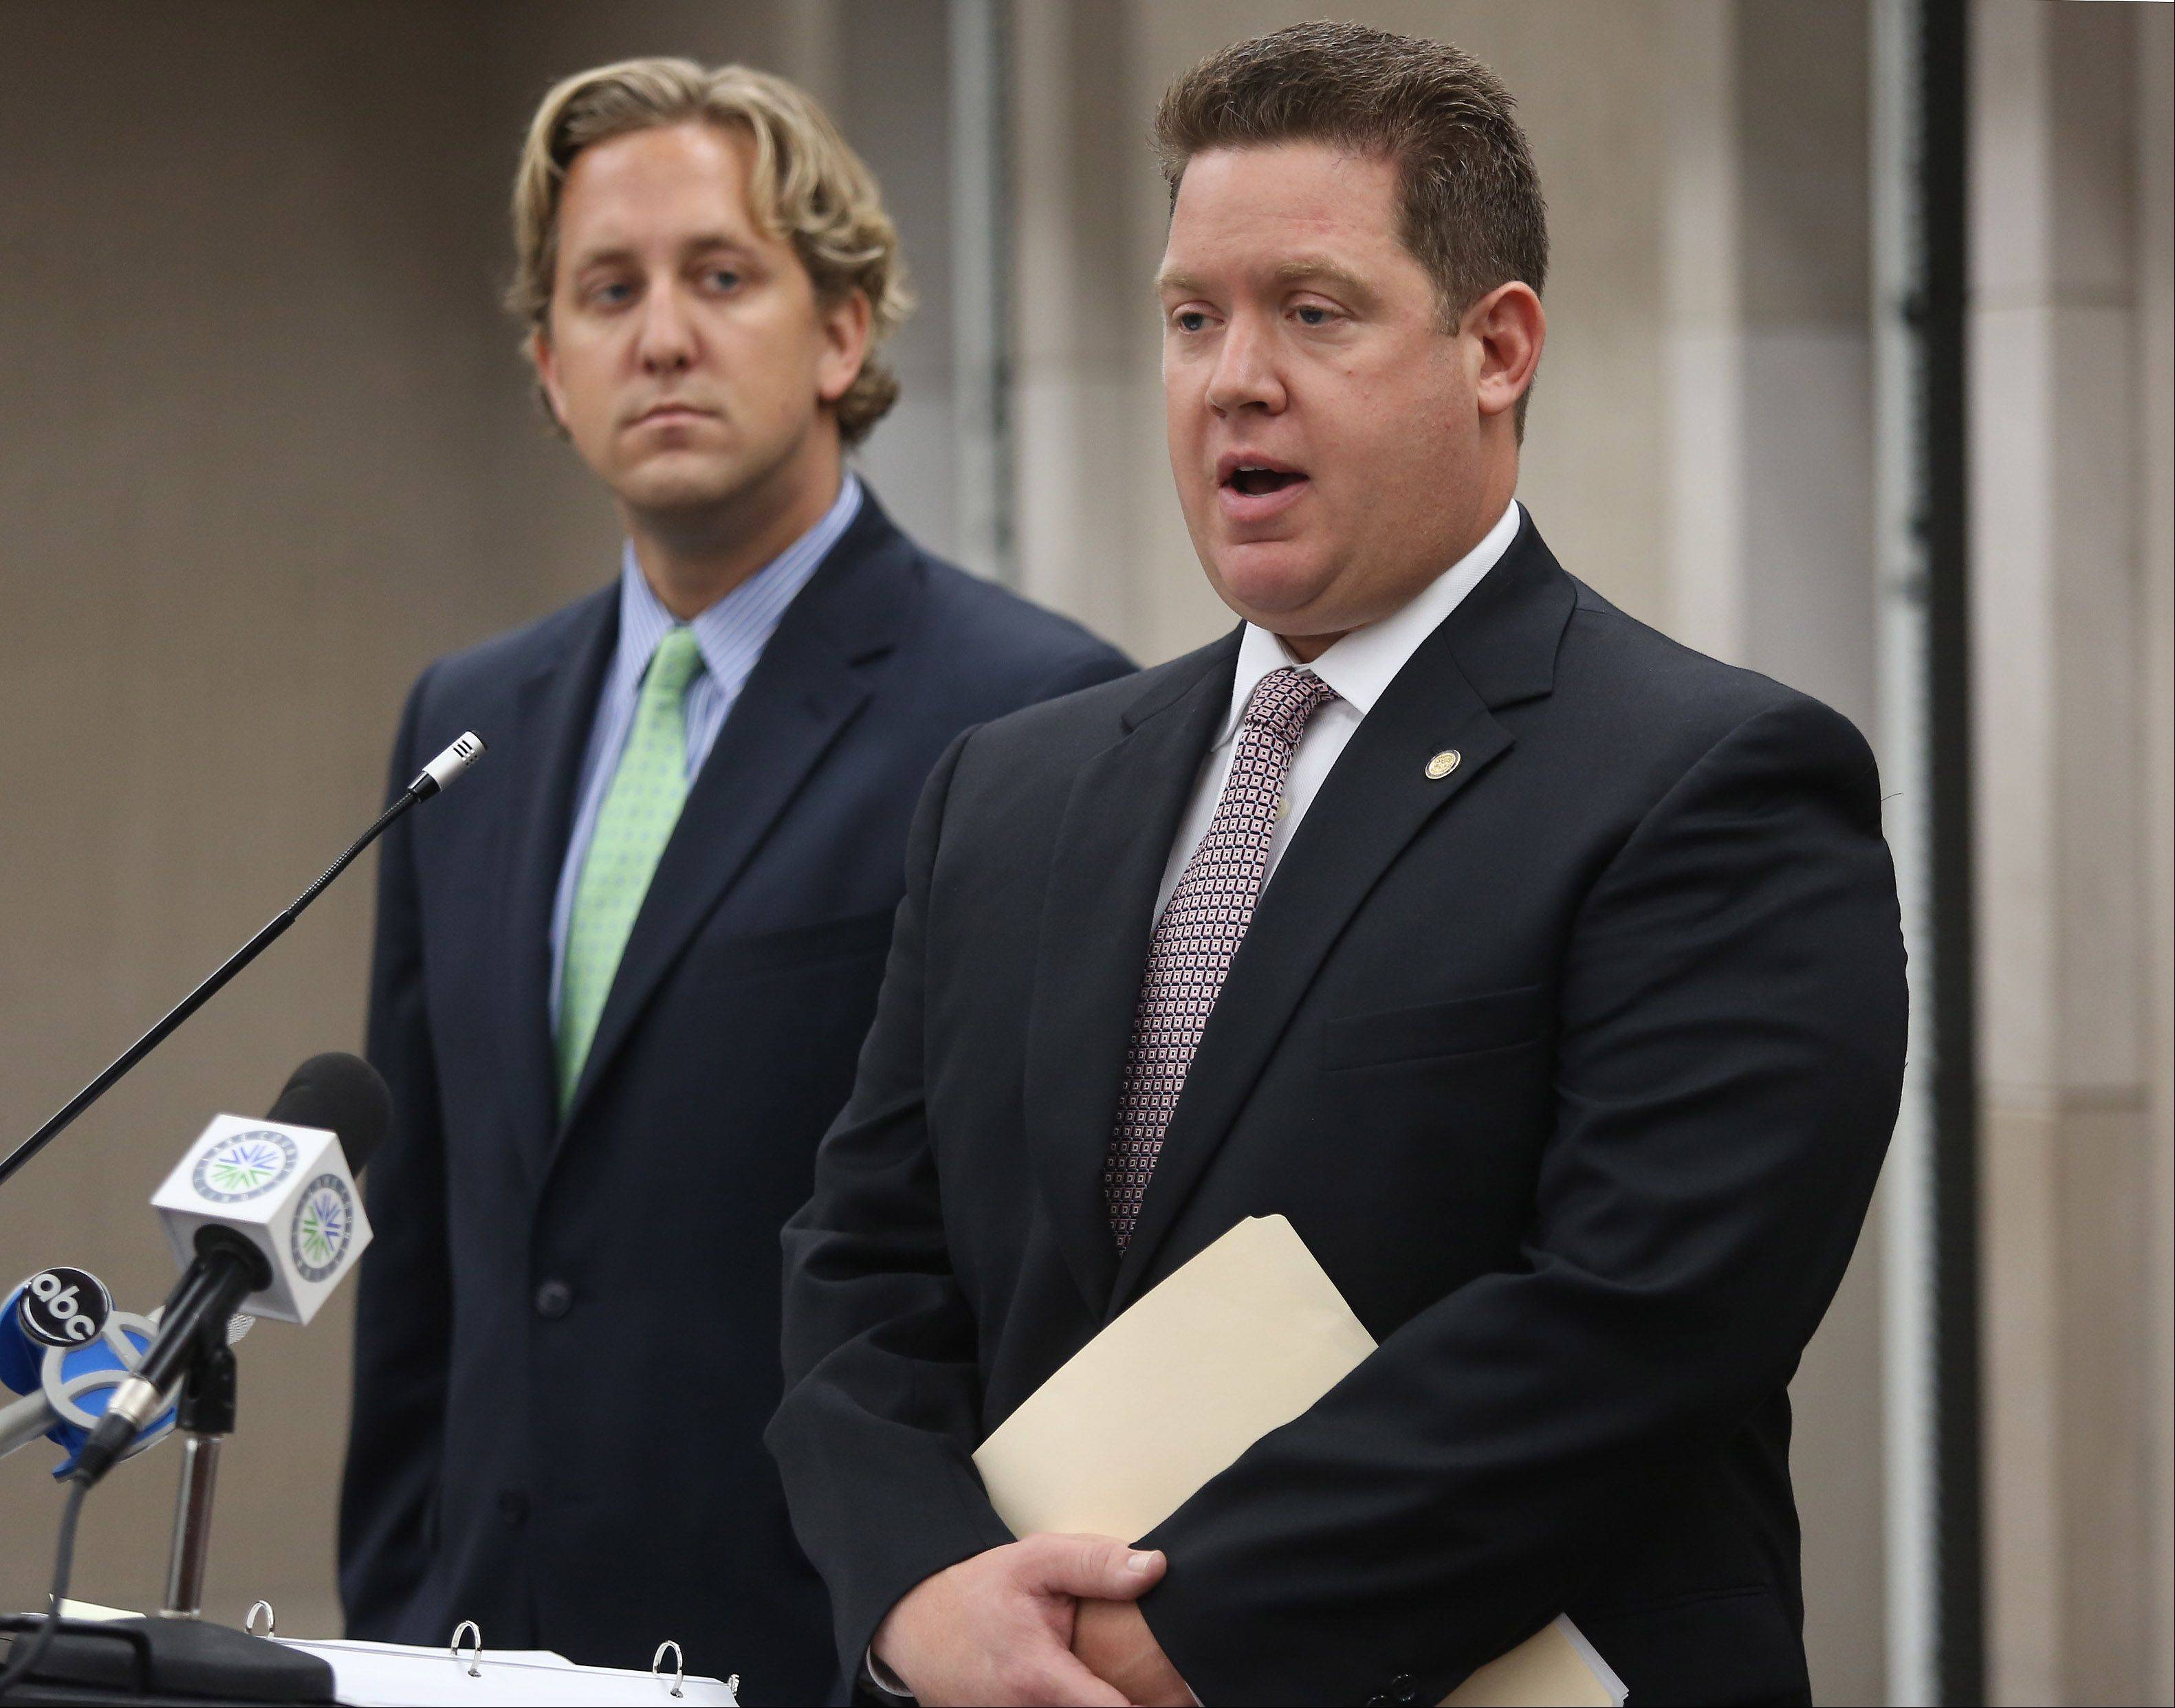 Gilbert R. Boucher II/gboucher@dailyherald.comLake County State's Attorney Mike Nerheim, right, and Lake County Board Chairman Aaron Lawlor announced Tuesday at the Lake County Building in Waukegan that they have filed a lawsuit challenging the constitutionality of House Bill 2418. The bill removes the authority of the county clerk to administer elections and establishes an elections commission without a voter referendum, in Lake County only.